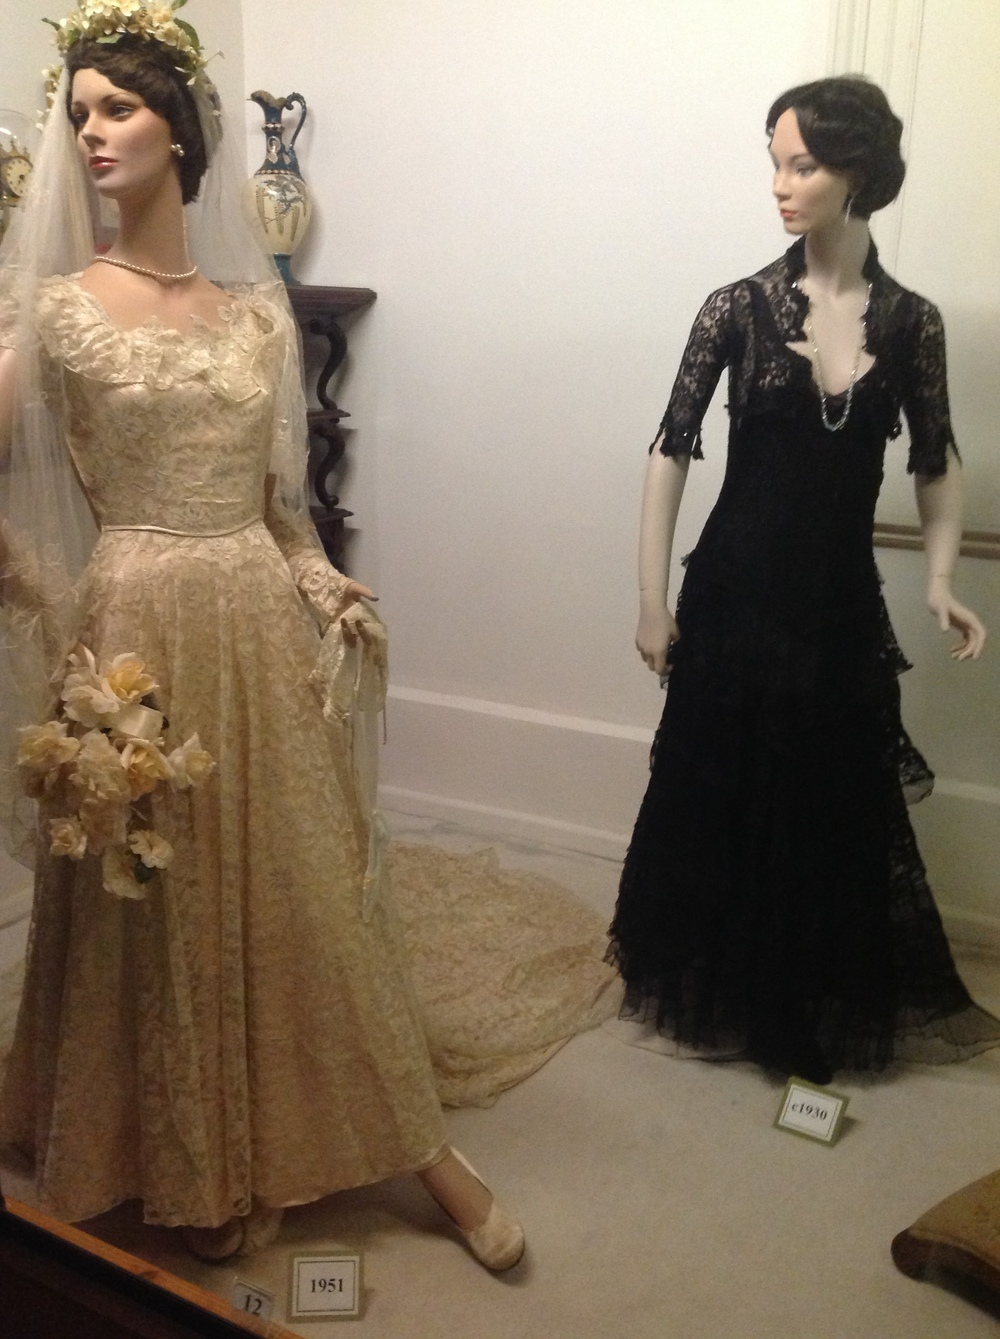 Two more examples of hand crafted costumes from Benella